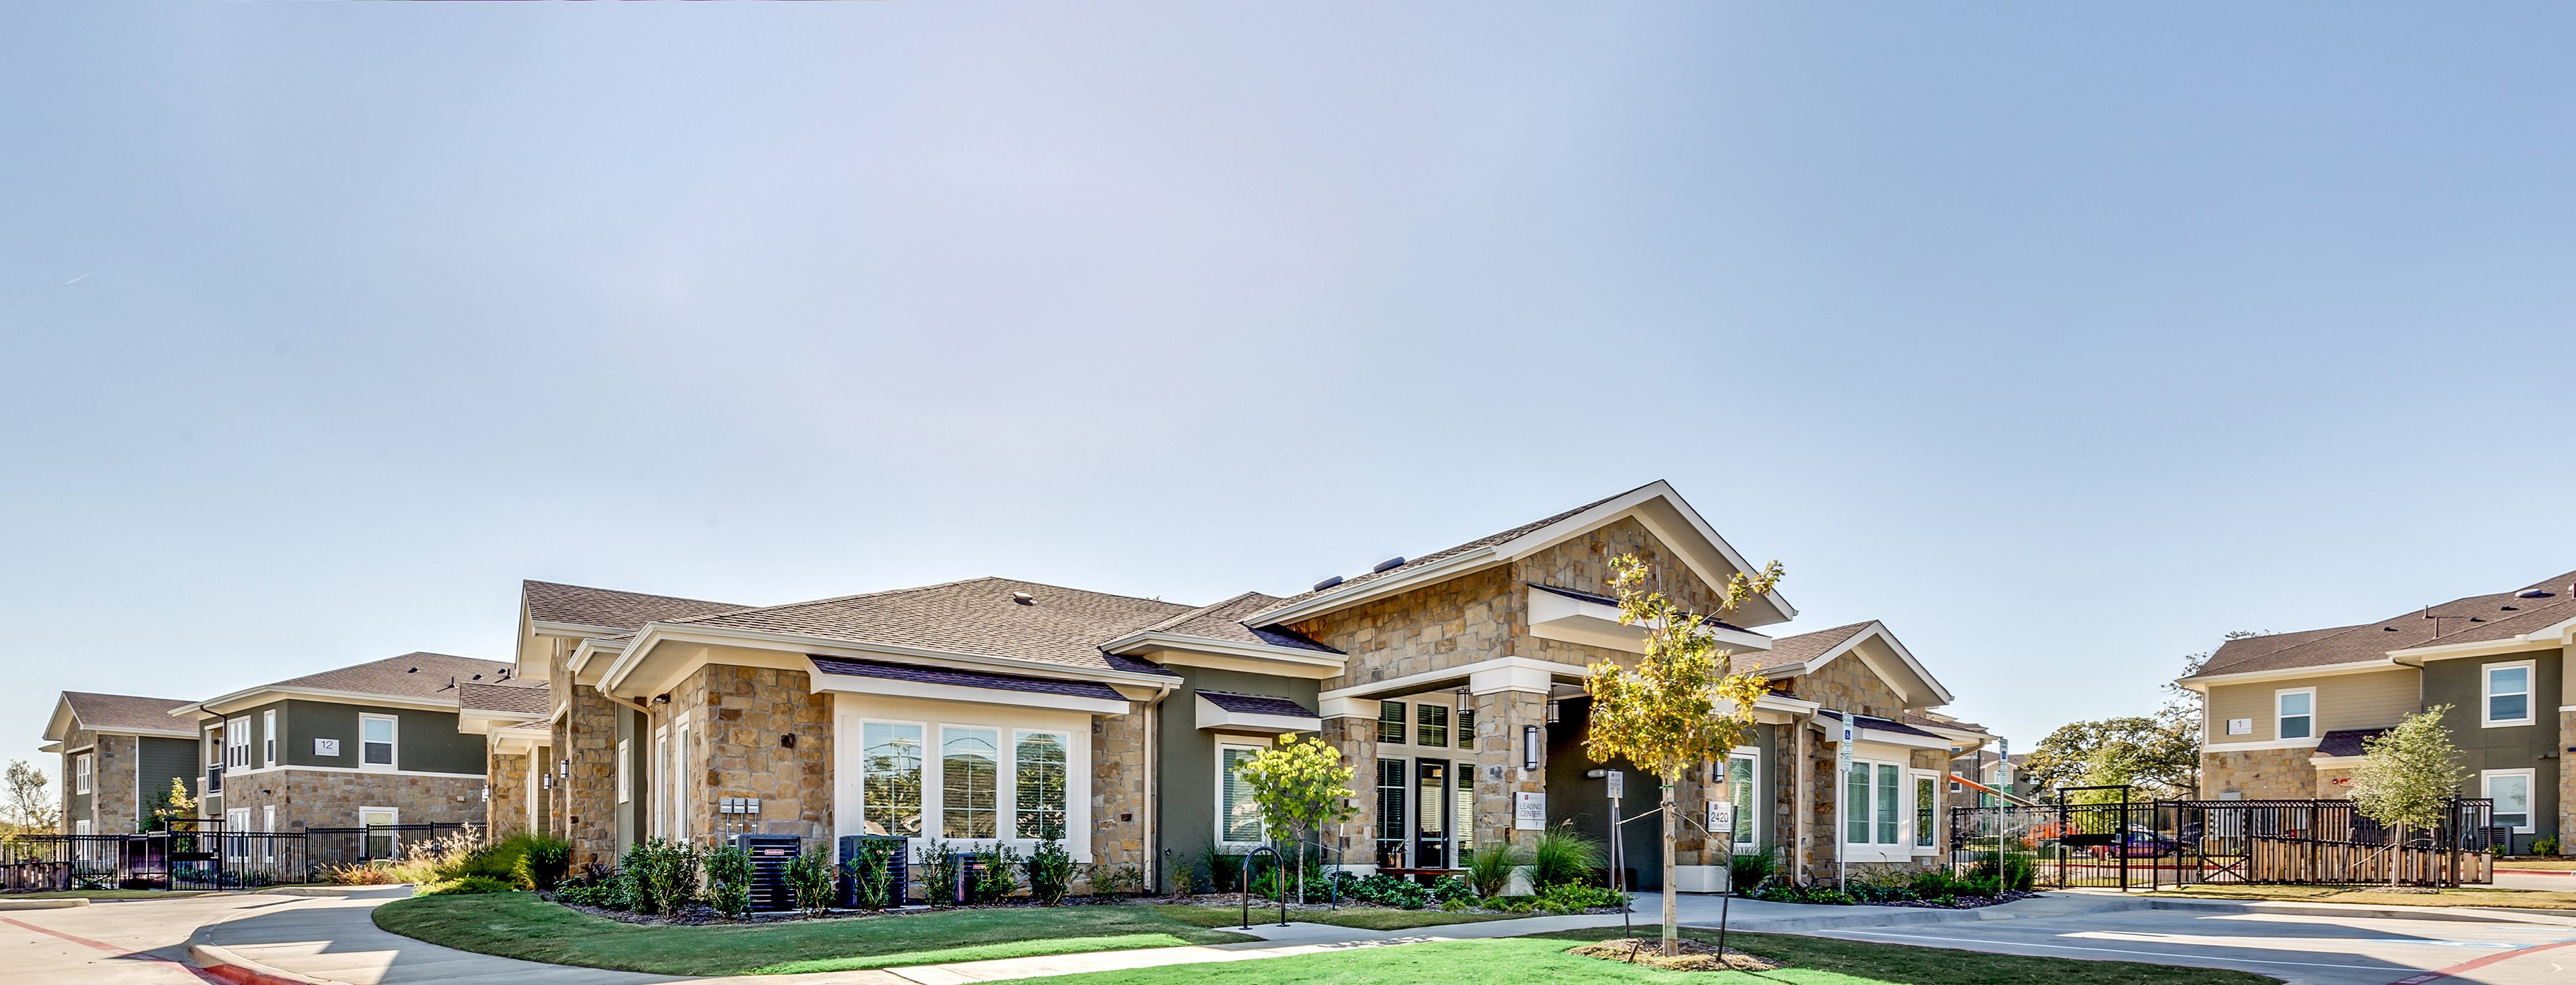 Resort Style Community with Thoughtful Amenities at The Veranda, Denton,Texas